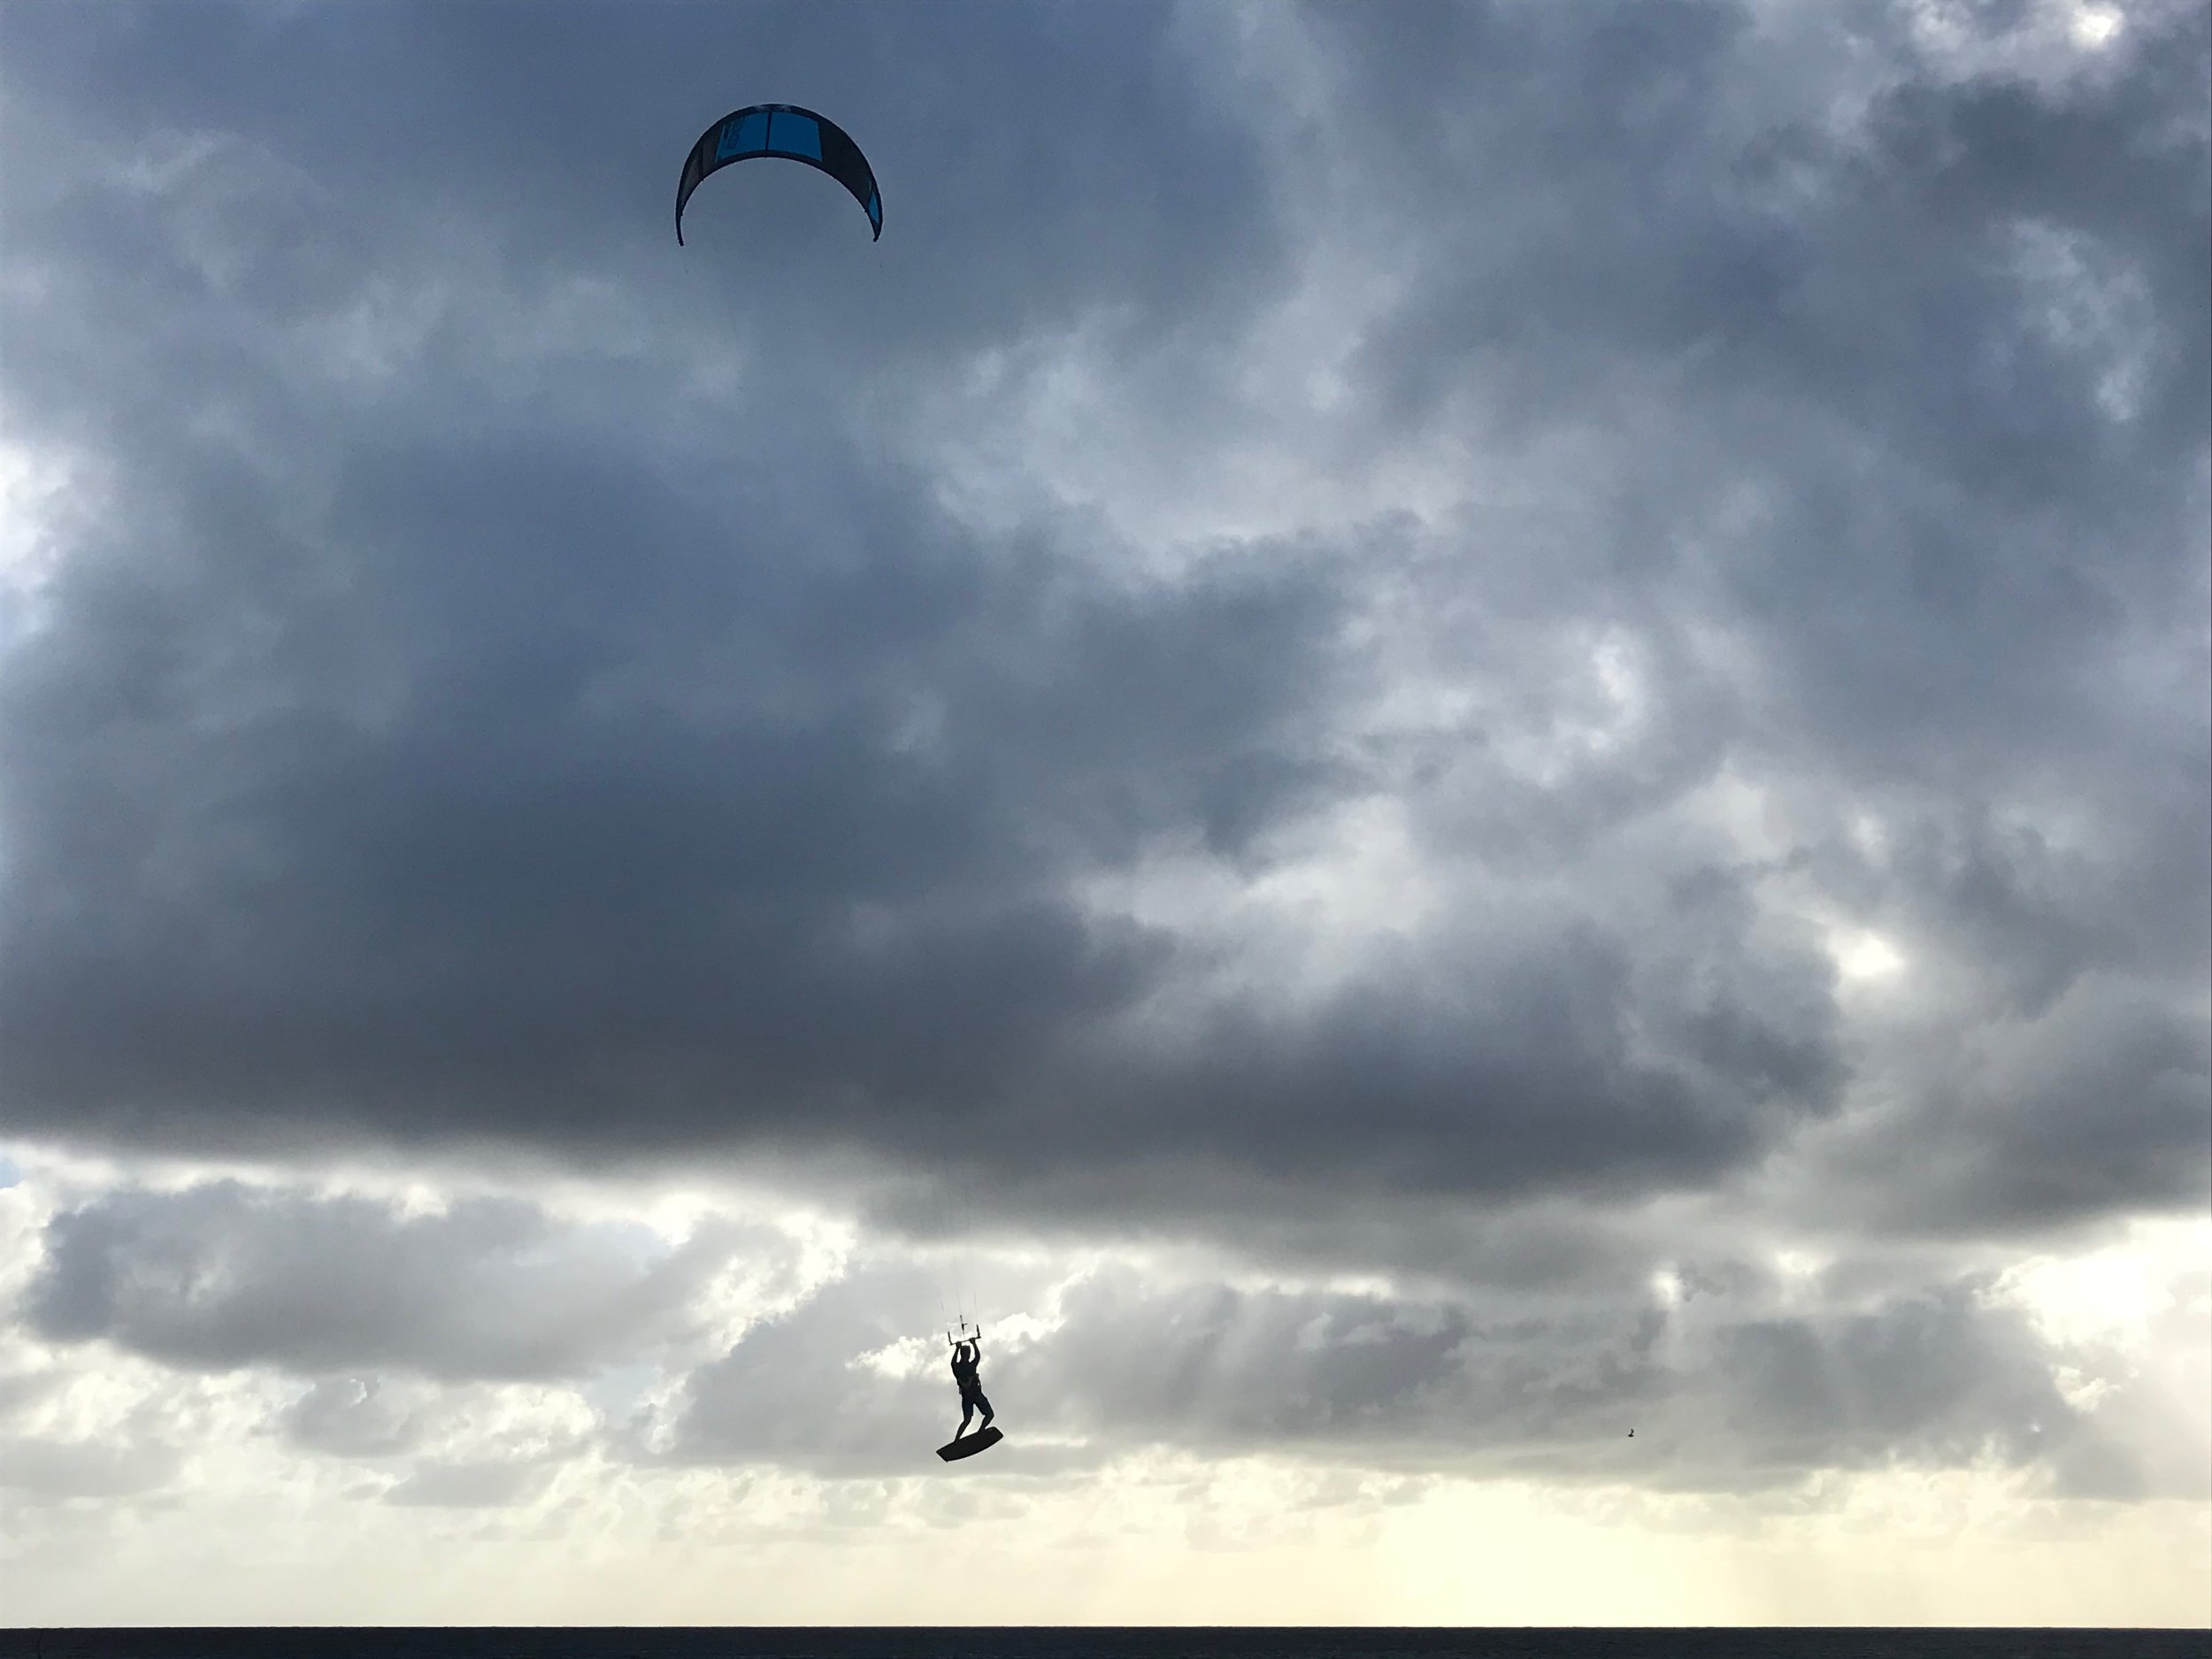 Kite-Surfing - A dream destination for kite surfers from all over the world.